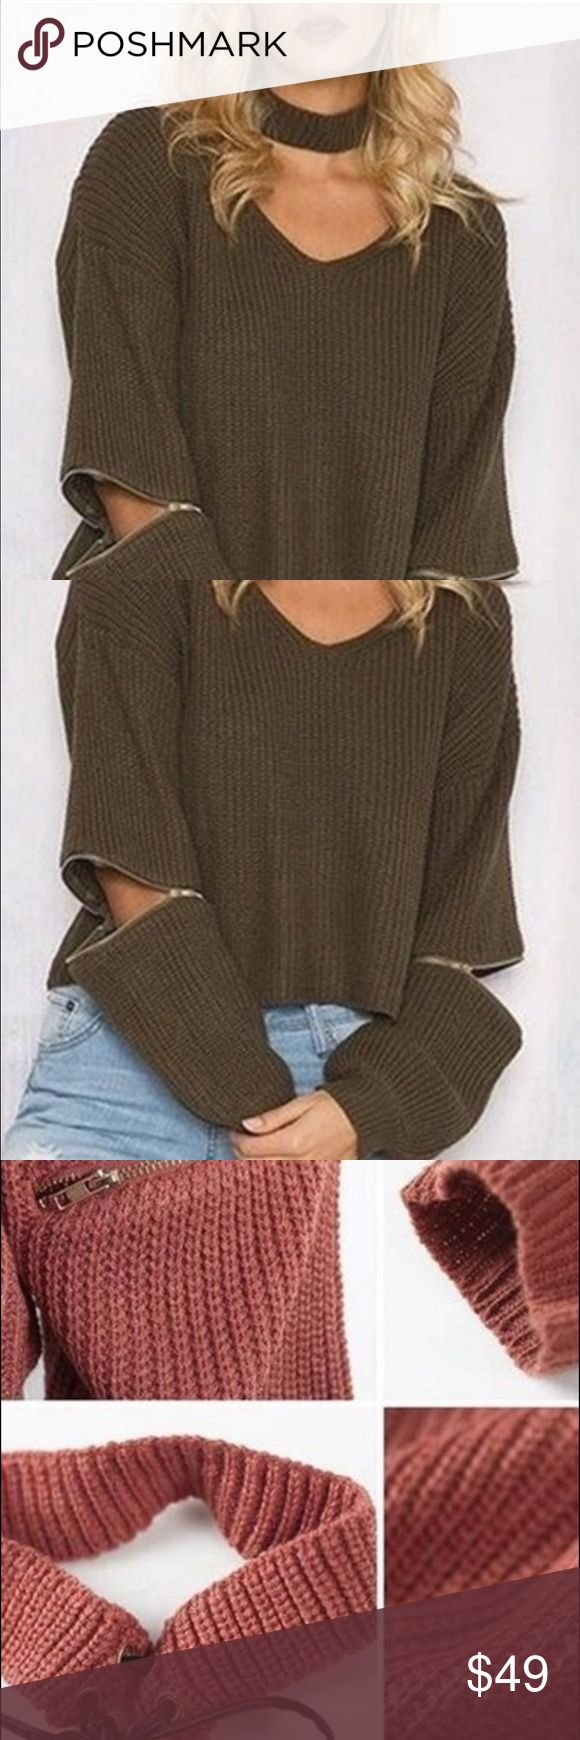 COMING SOONSweater Halter V neck ripped sweater design with zippers on the sleeve and a detachable choker that ties in the back. Made of 100% Acrylic.   ⭐️Like this item if you would like to be notified when it arrives!⭐️ Braggnwrights Sweaters V-Necks